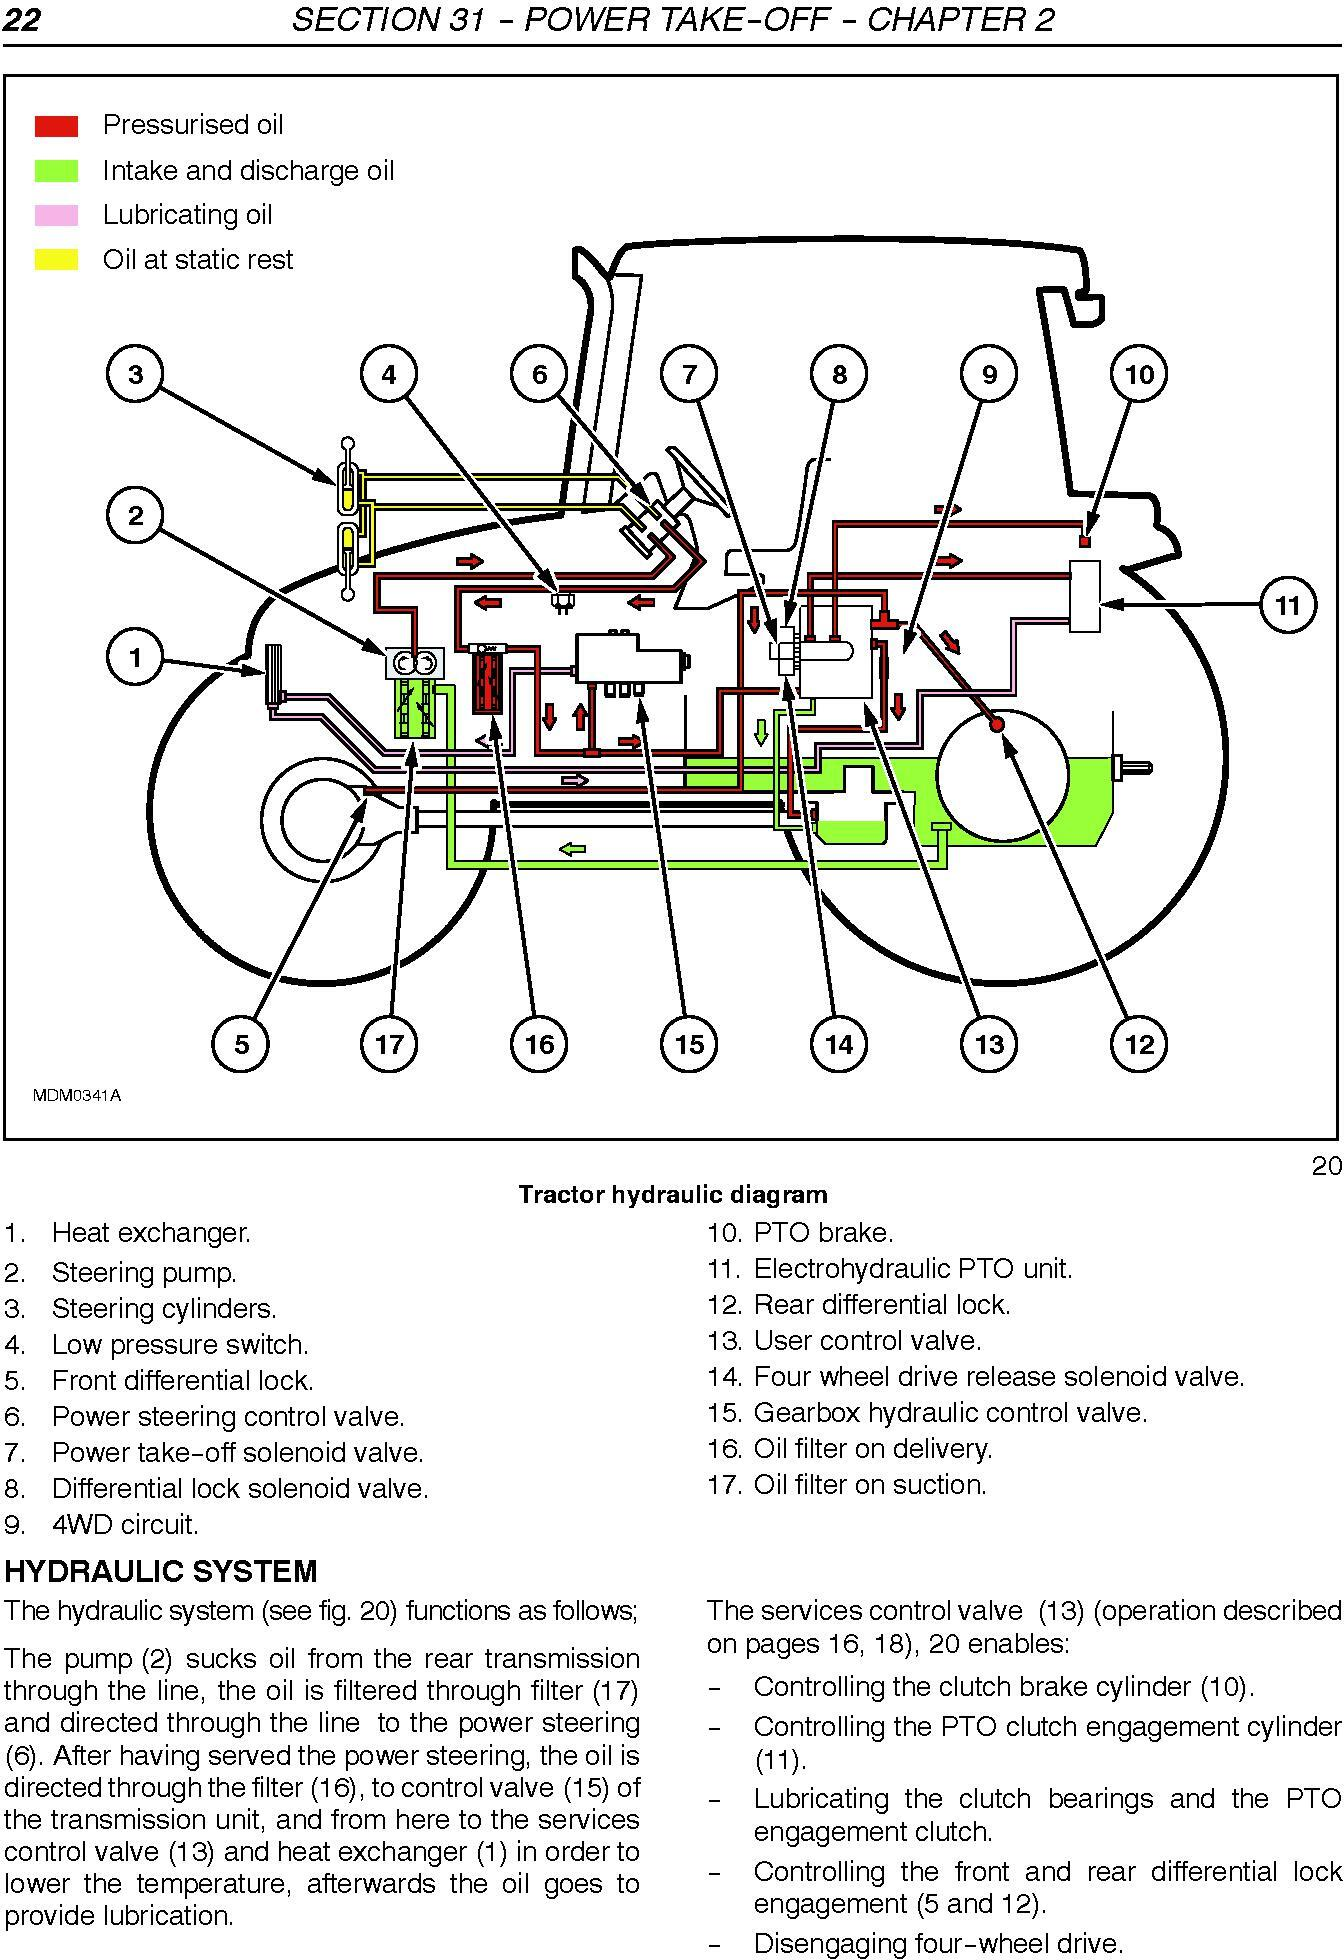 New Holland T5040, T5050, T5060, T5070 Tractor Service Manual - 2